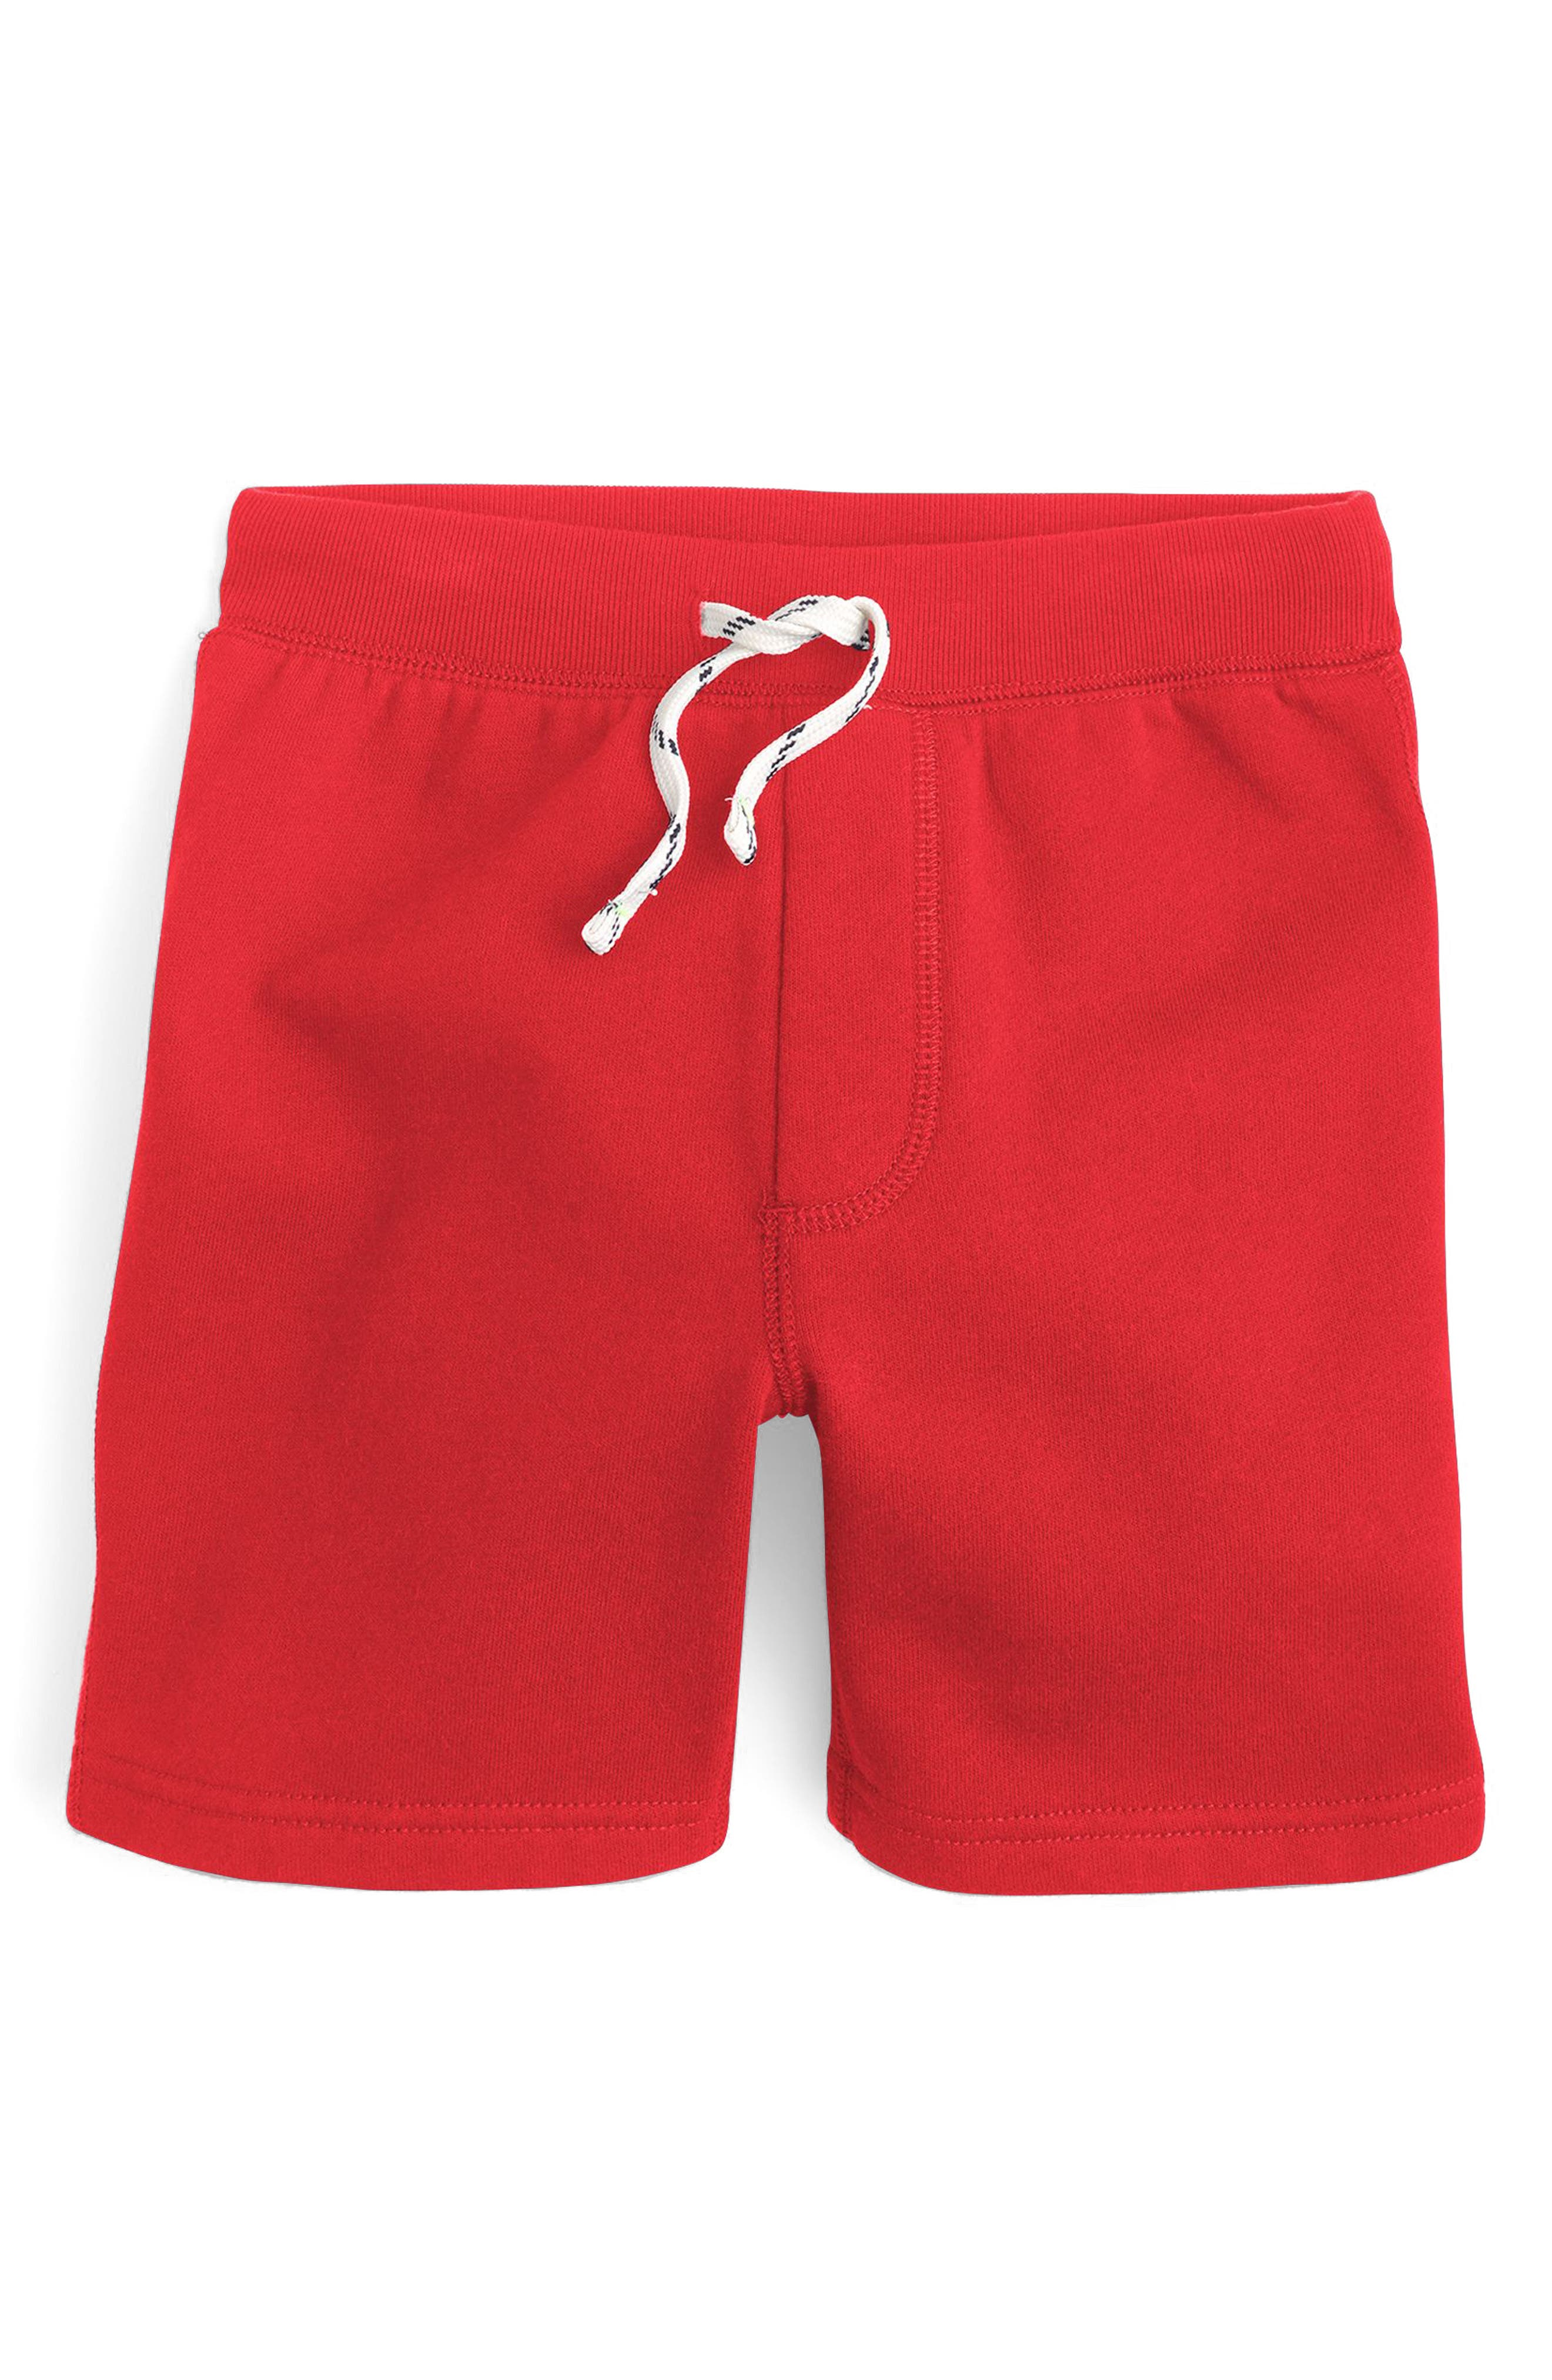 Alternate Image 1 Selected - crewcuts by J.Crew Classic Sweat Shorts (Toddler Boys, Little Boys & Big Boys)